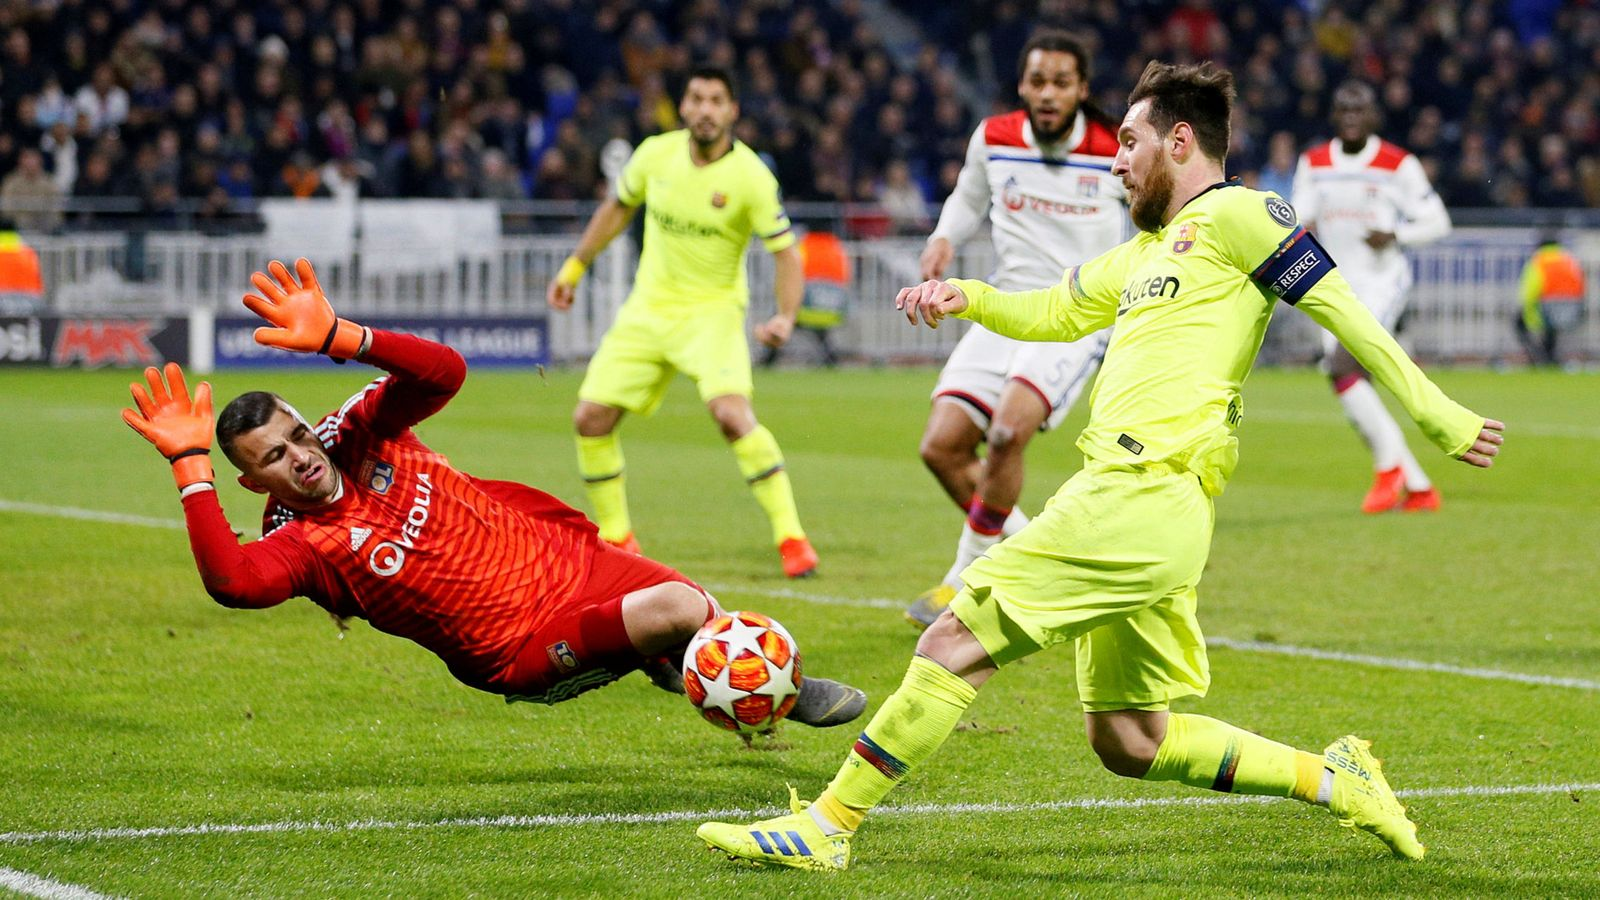 Foto: Champions league - round of 16 first leg - olympique lyonnais v fc barcelona